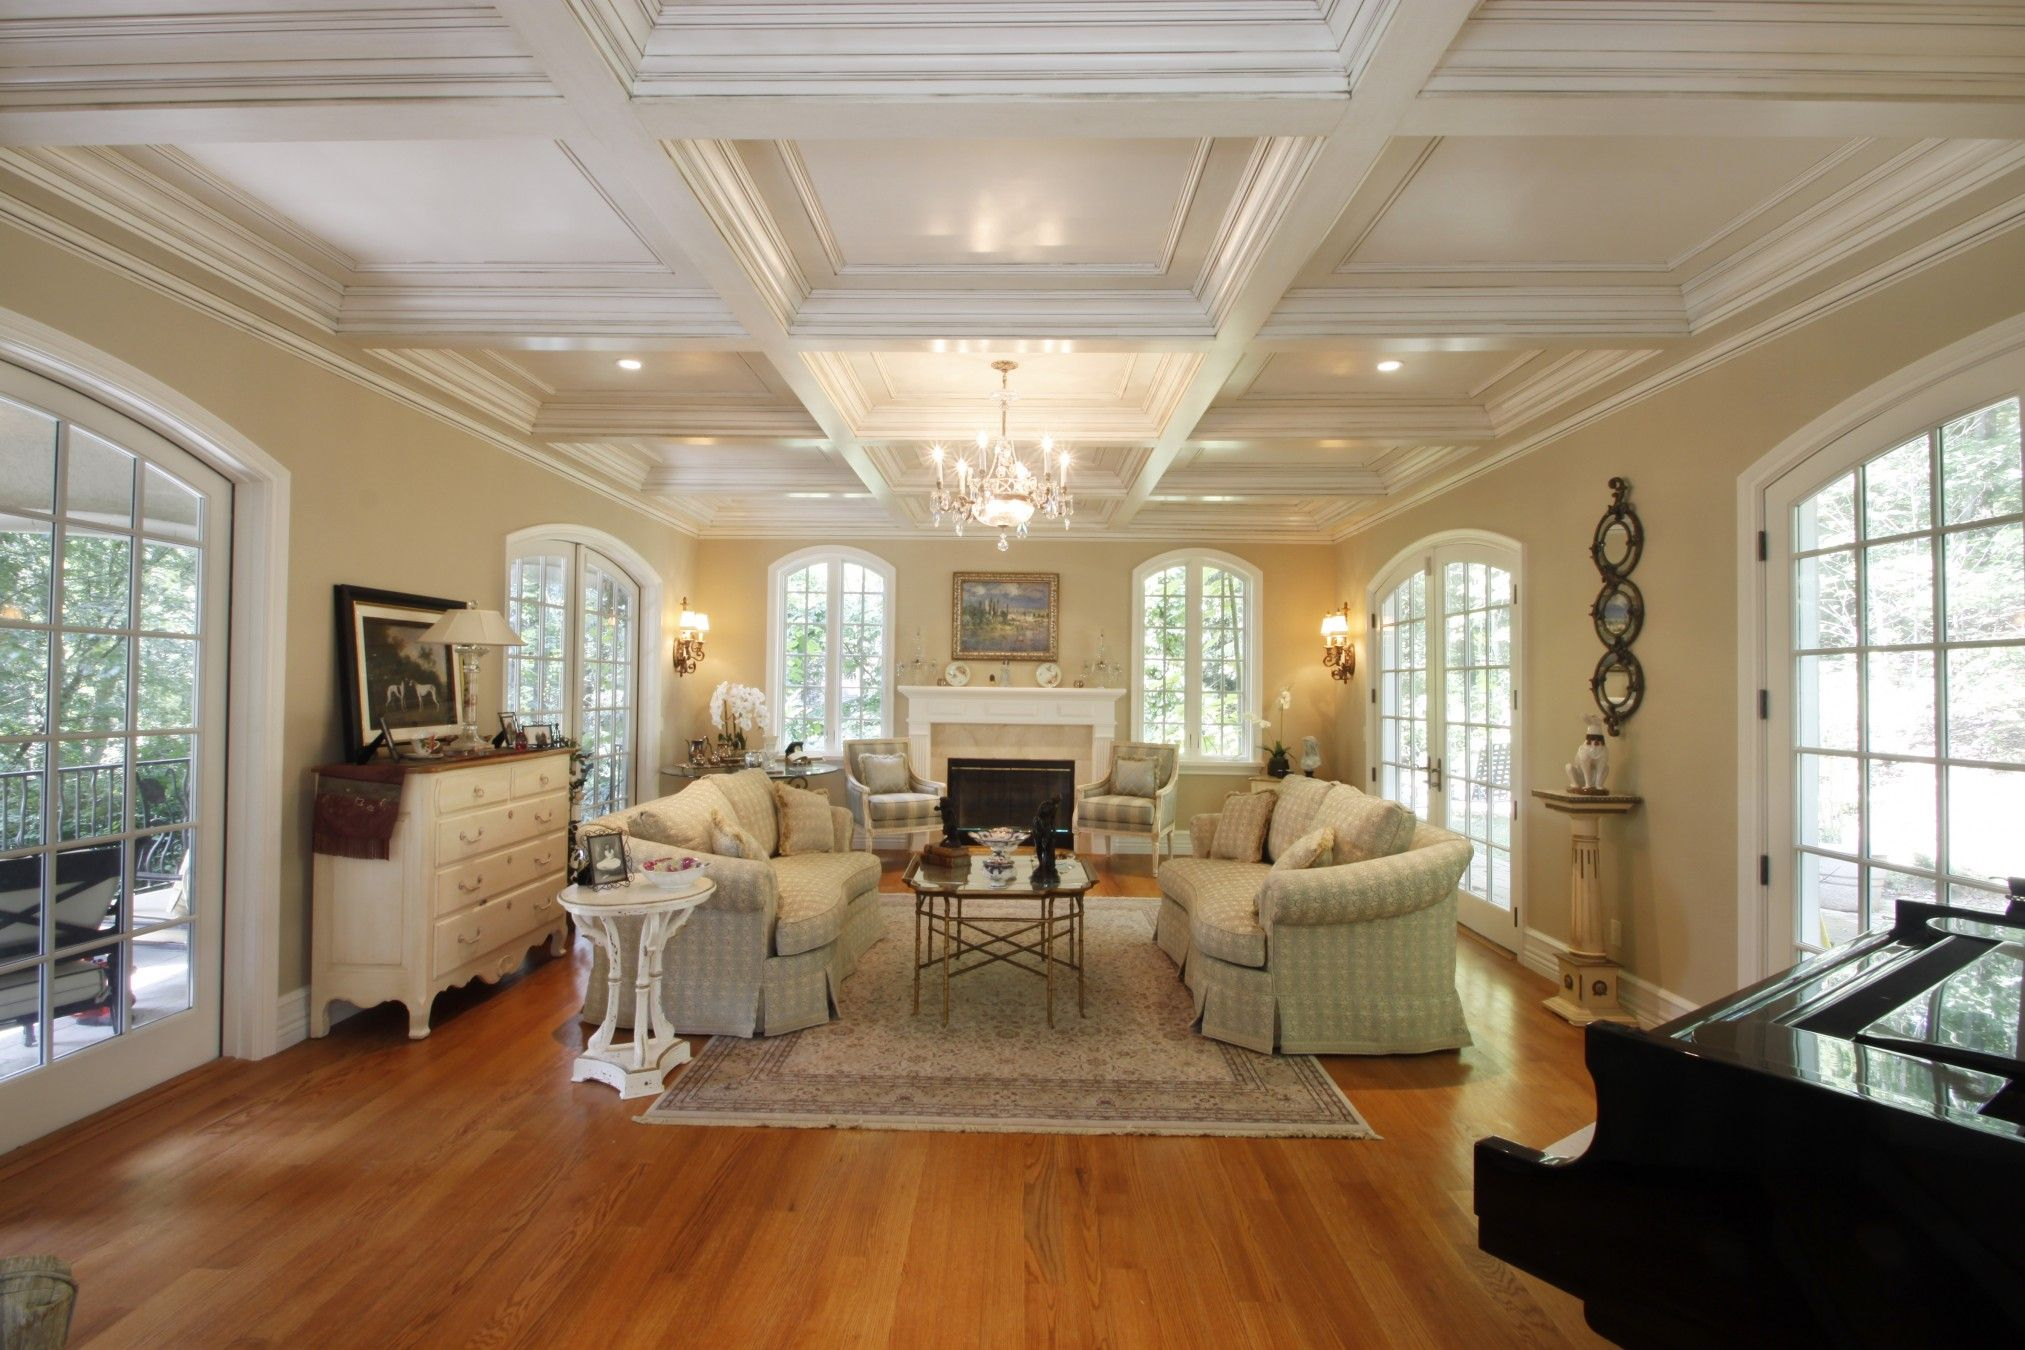 27 amazing coffered ceiling ideas for any room coffer ceiling design ideas tips and techniques for a unique coffered ceiling in kitchens living dailygadgetfo Image collections